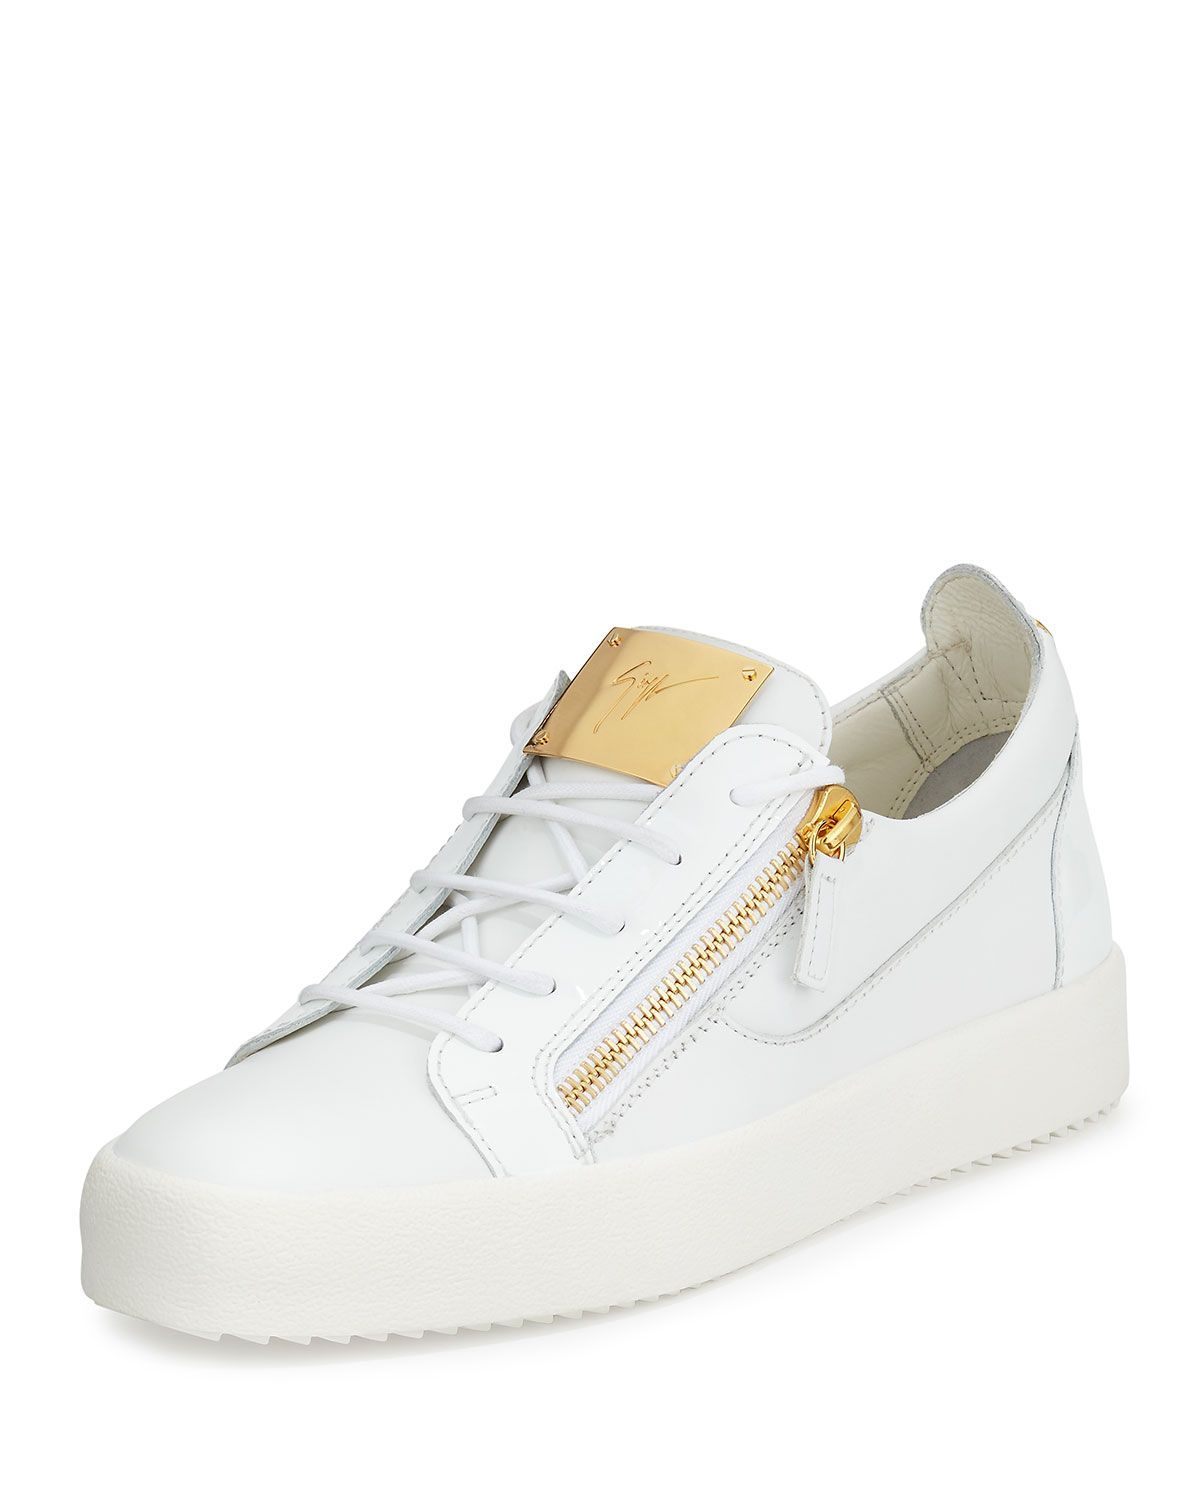 76714f7ba6145 Men's Patent Leather Low-Top Sneaker, White, Size: 47EU/14US - Giuseppe  Zanotti